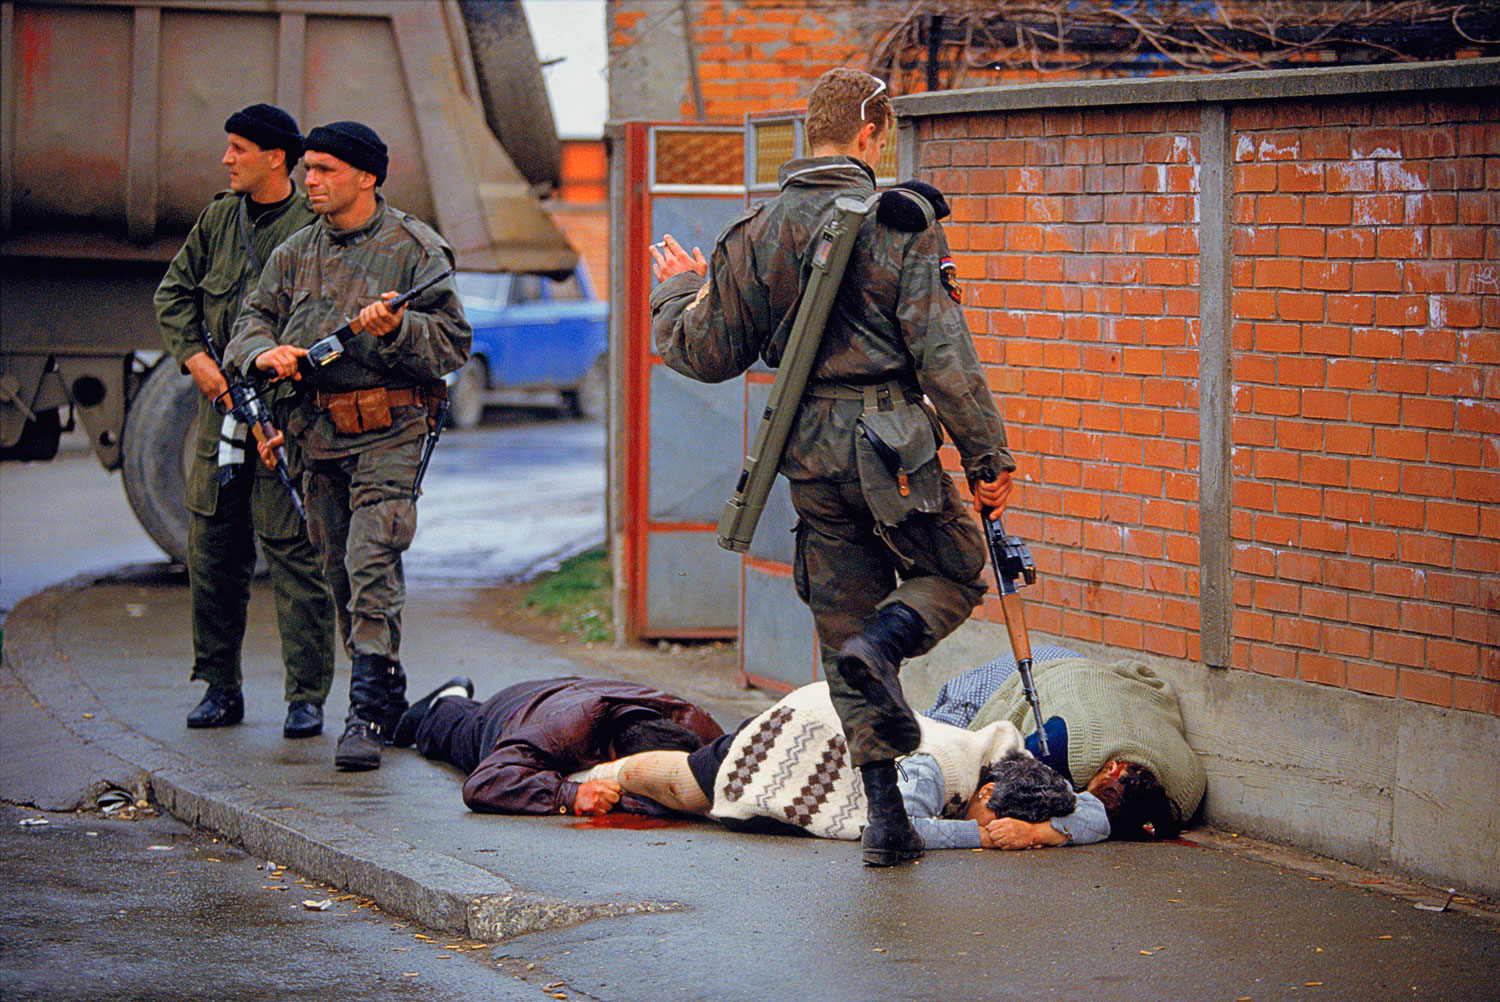 Ron Haviv's iconic image, taken on March 31, 1992, shows Serbian paramilitary officers known as Arkan's Tigers kill and kick Bosnian Muslim civilians during the first battle for Bosnia in Bijeljina. It was recently shared on social media sites with a caption claiming to portray Ukrainian soldiers in 2014.